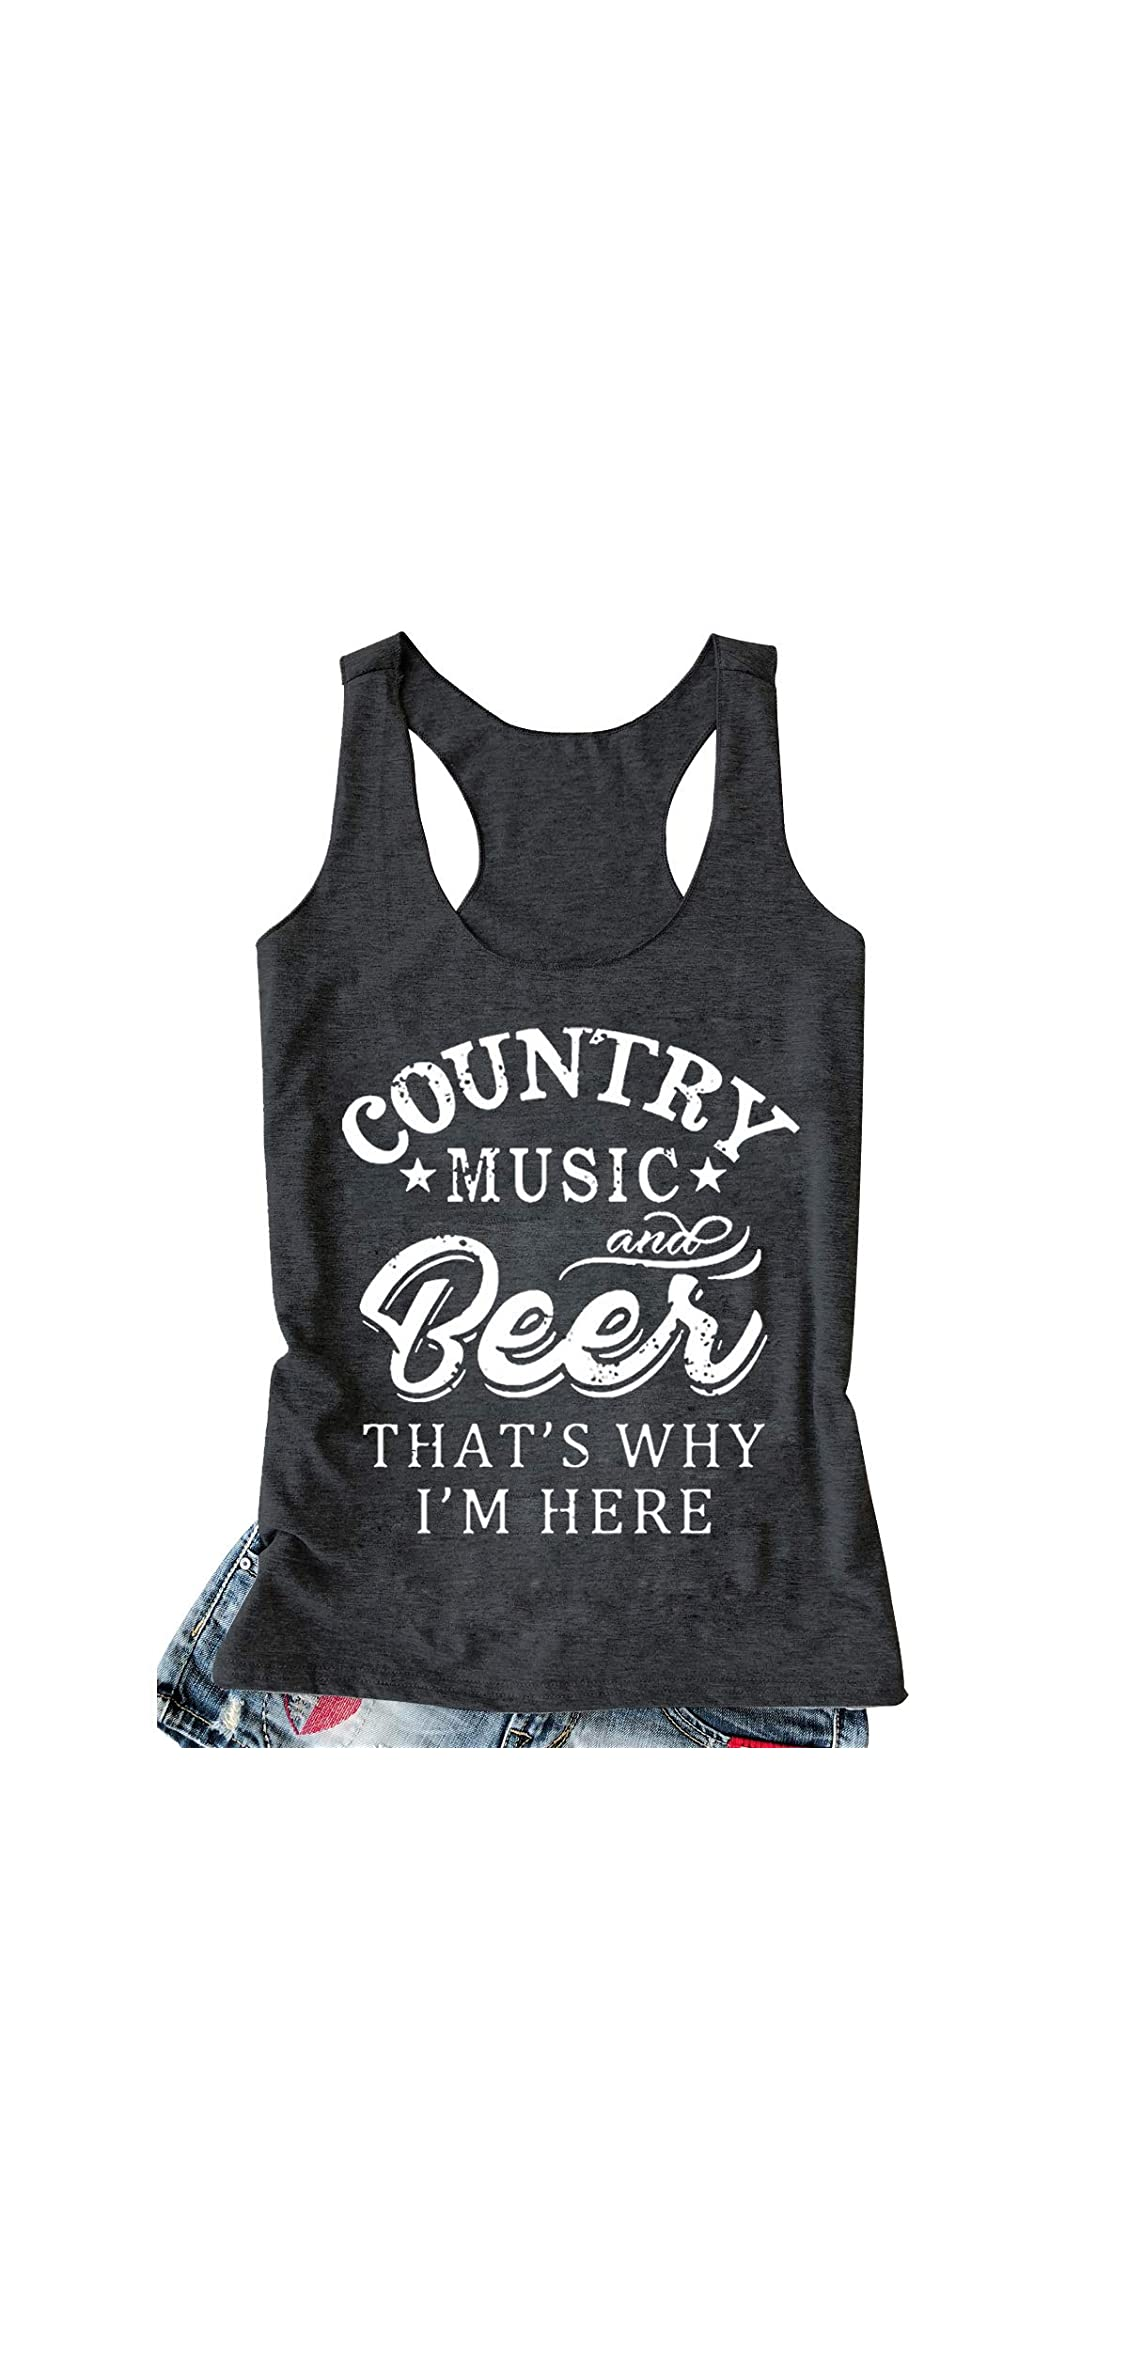 Women Funny Letter Tank Top Summer Sleeveless Cami Top Sporting